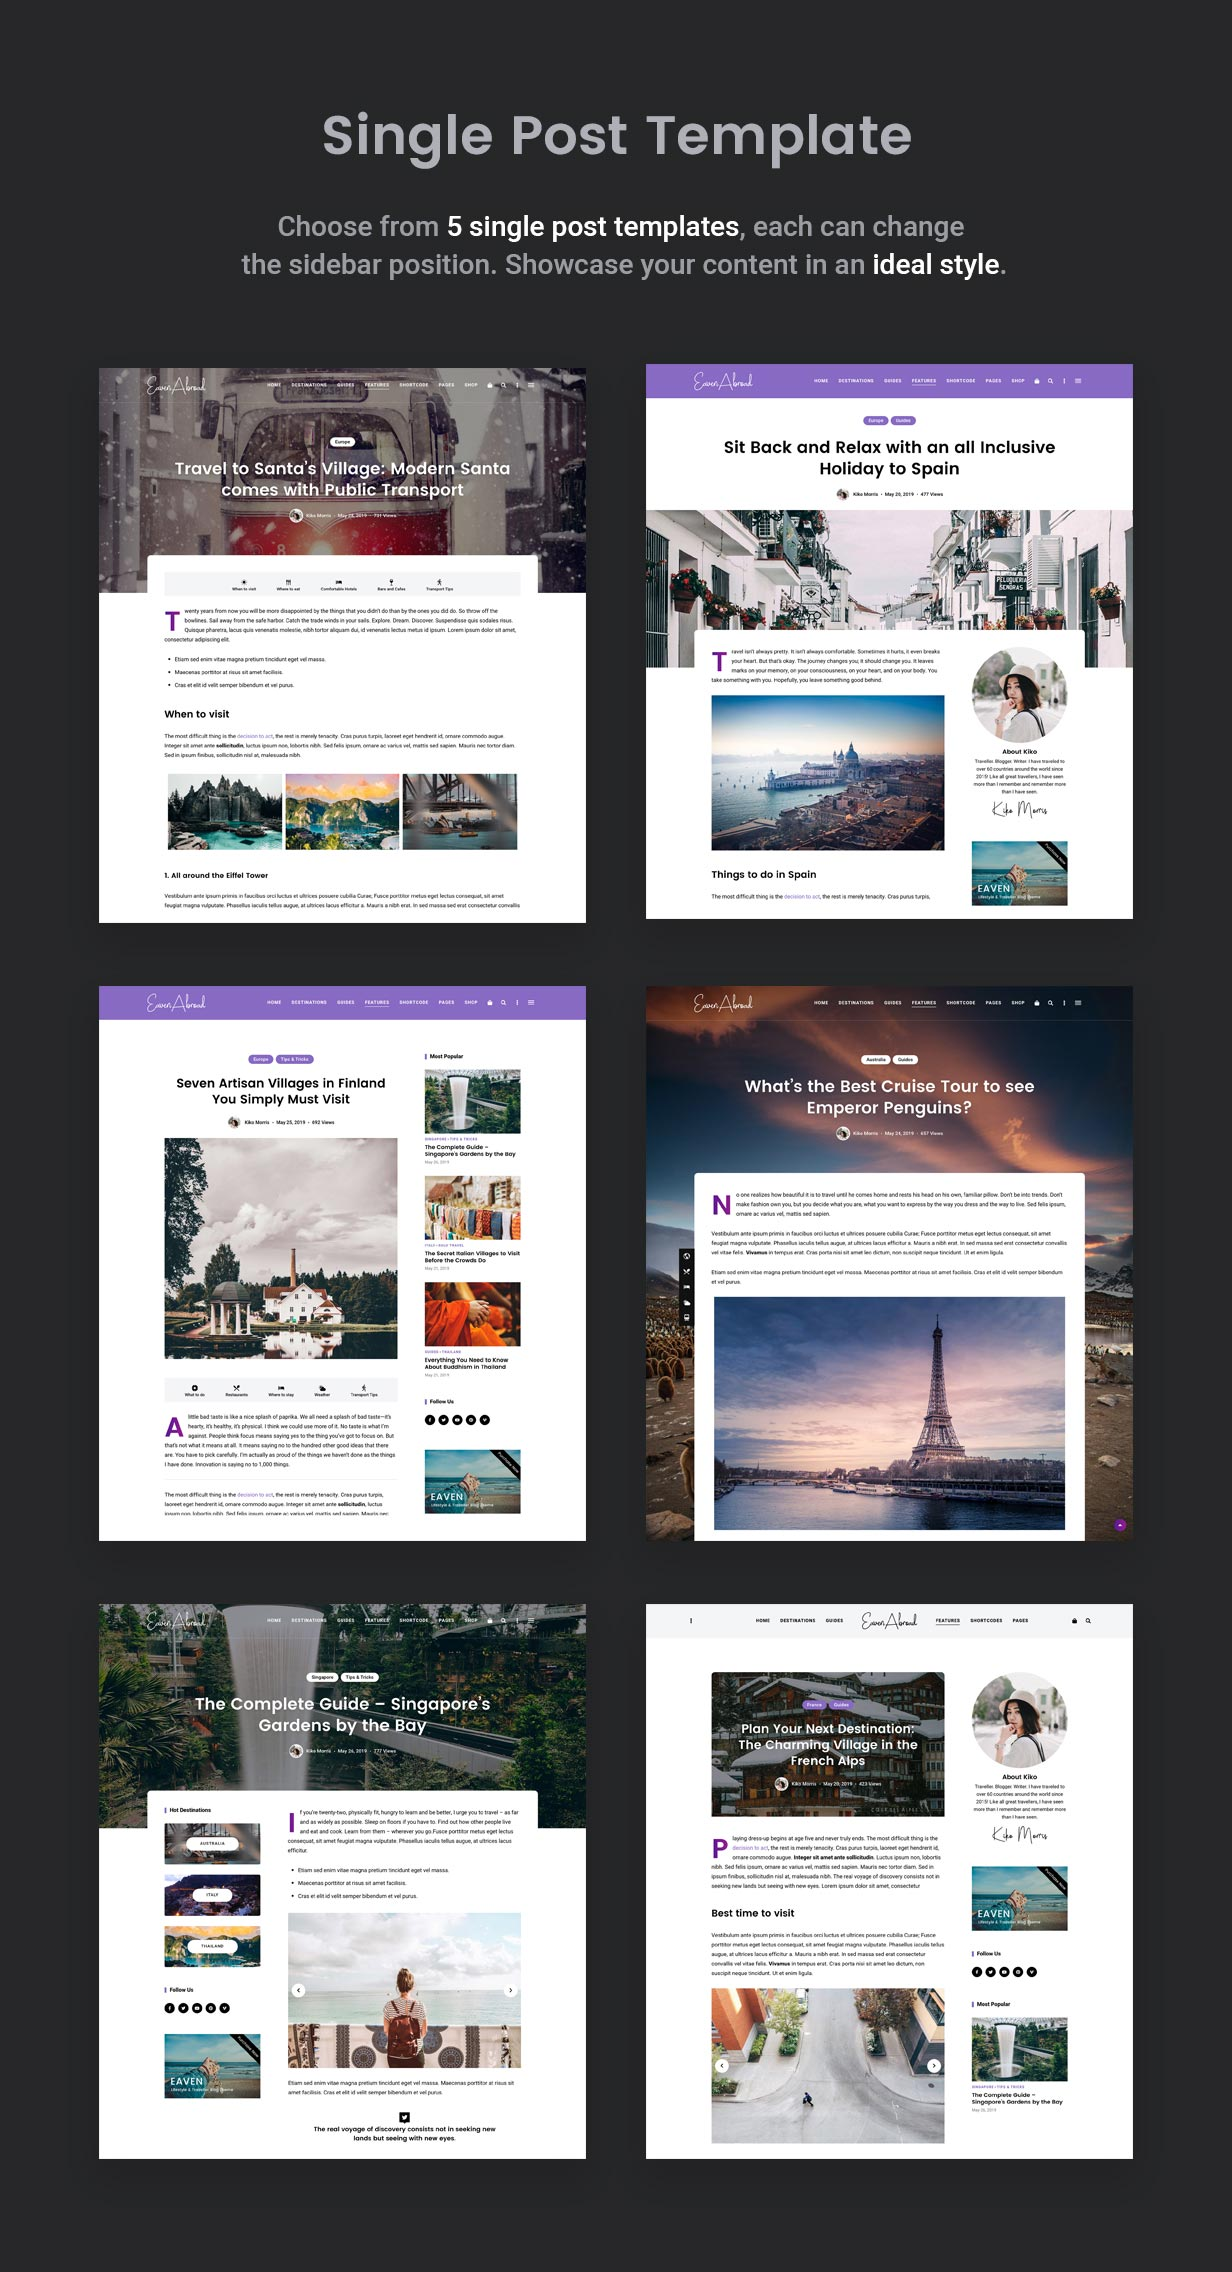 Single Post Layout Variations